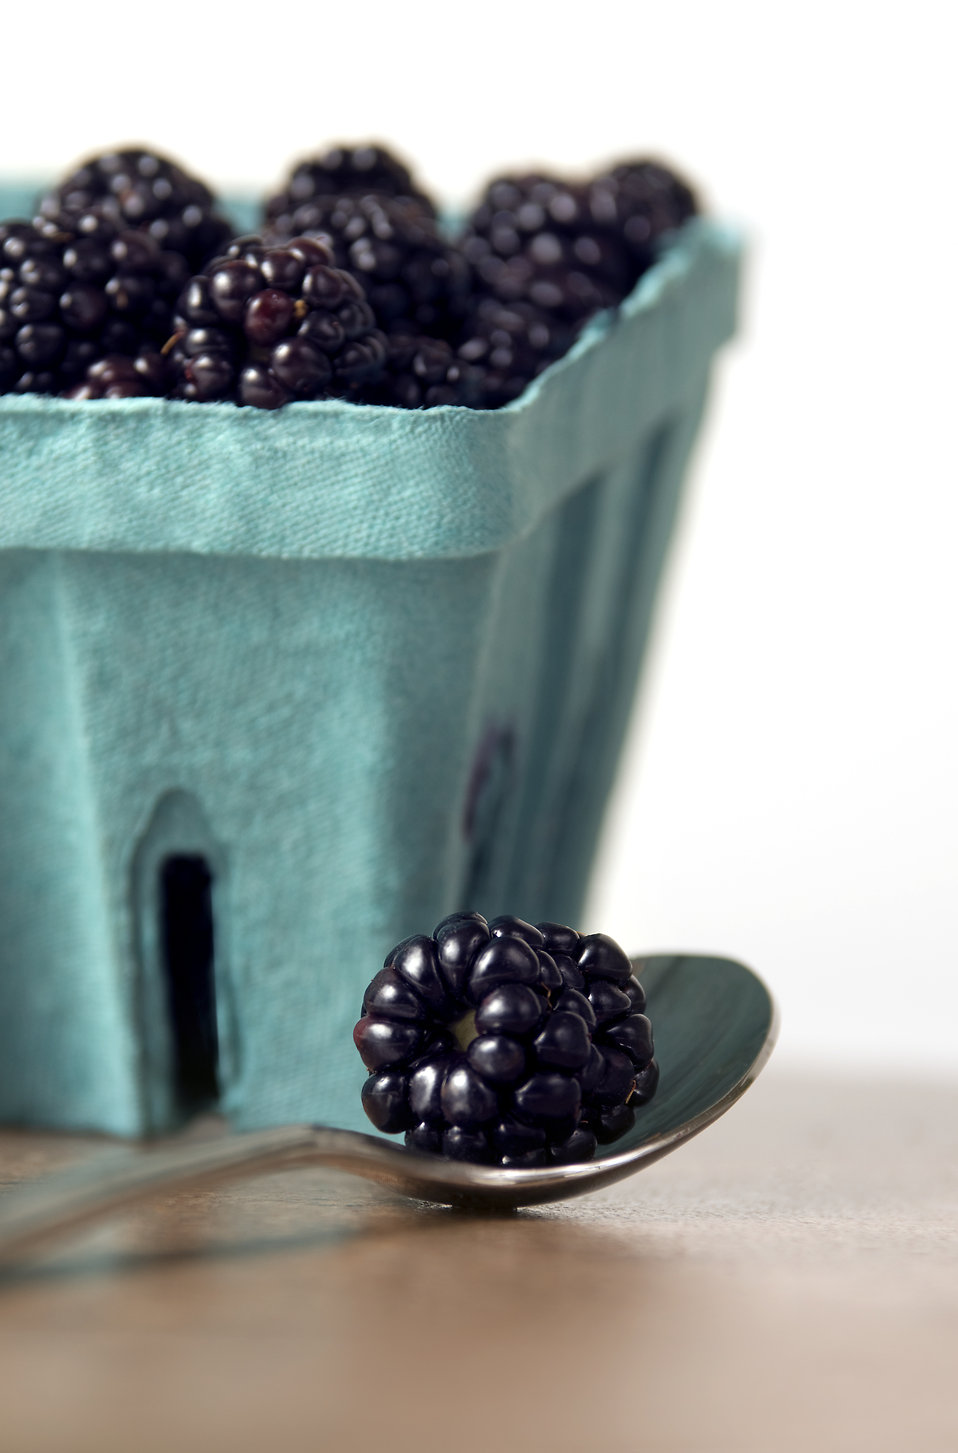 A container of blackberries : Free Stock Photo